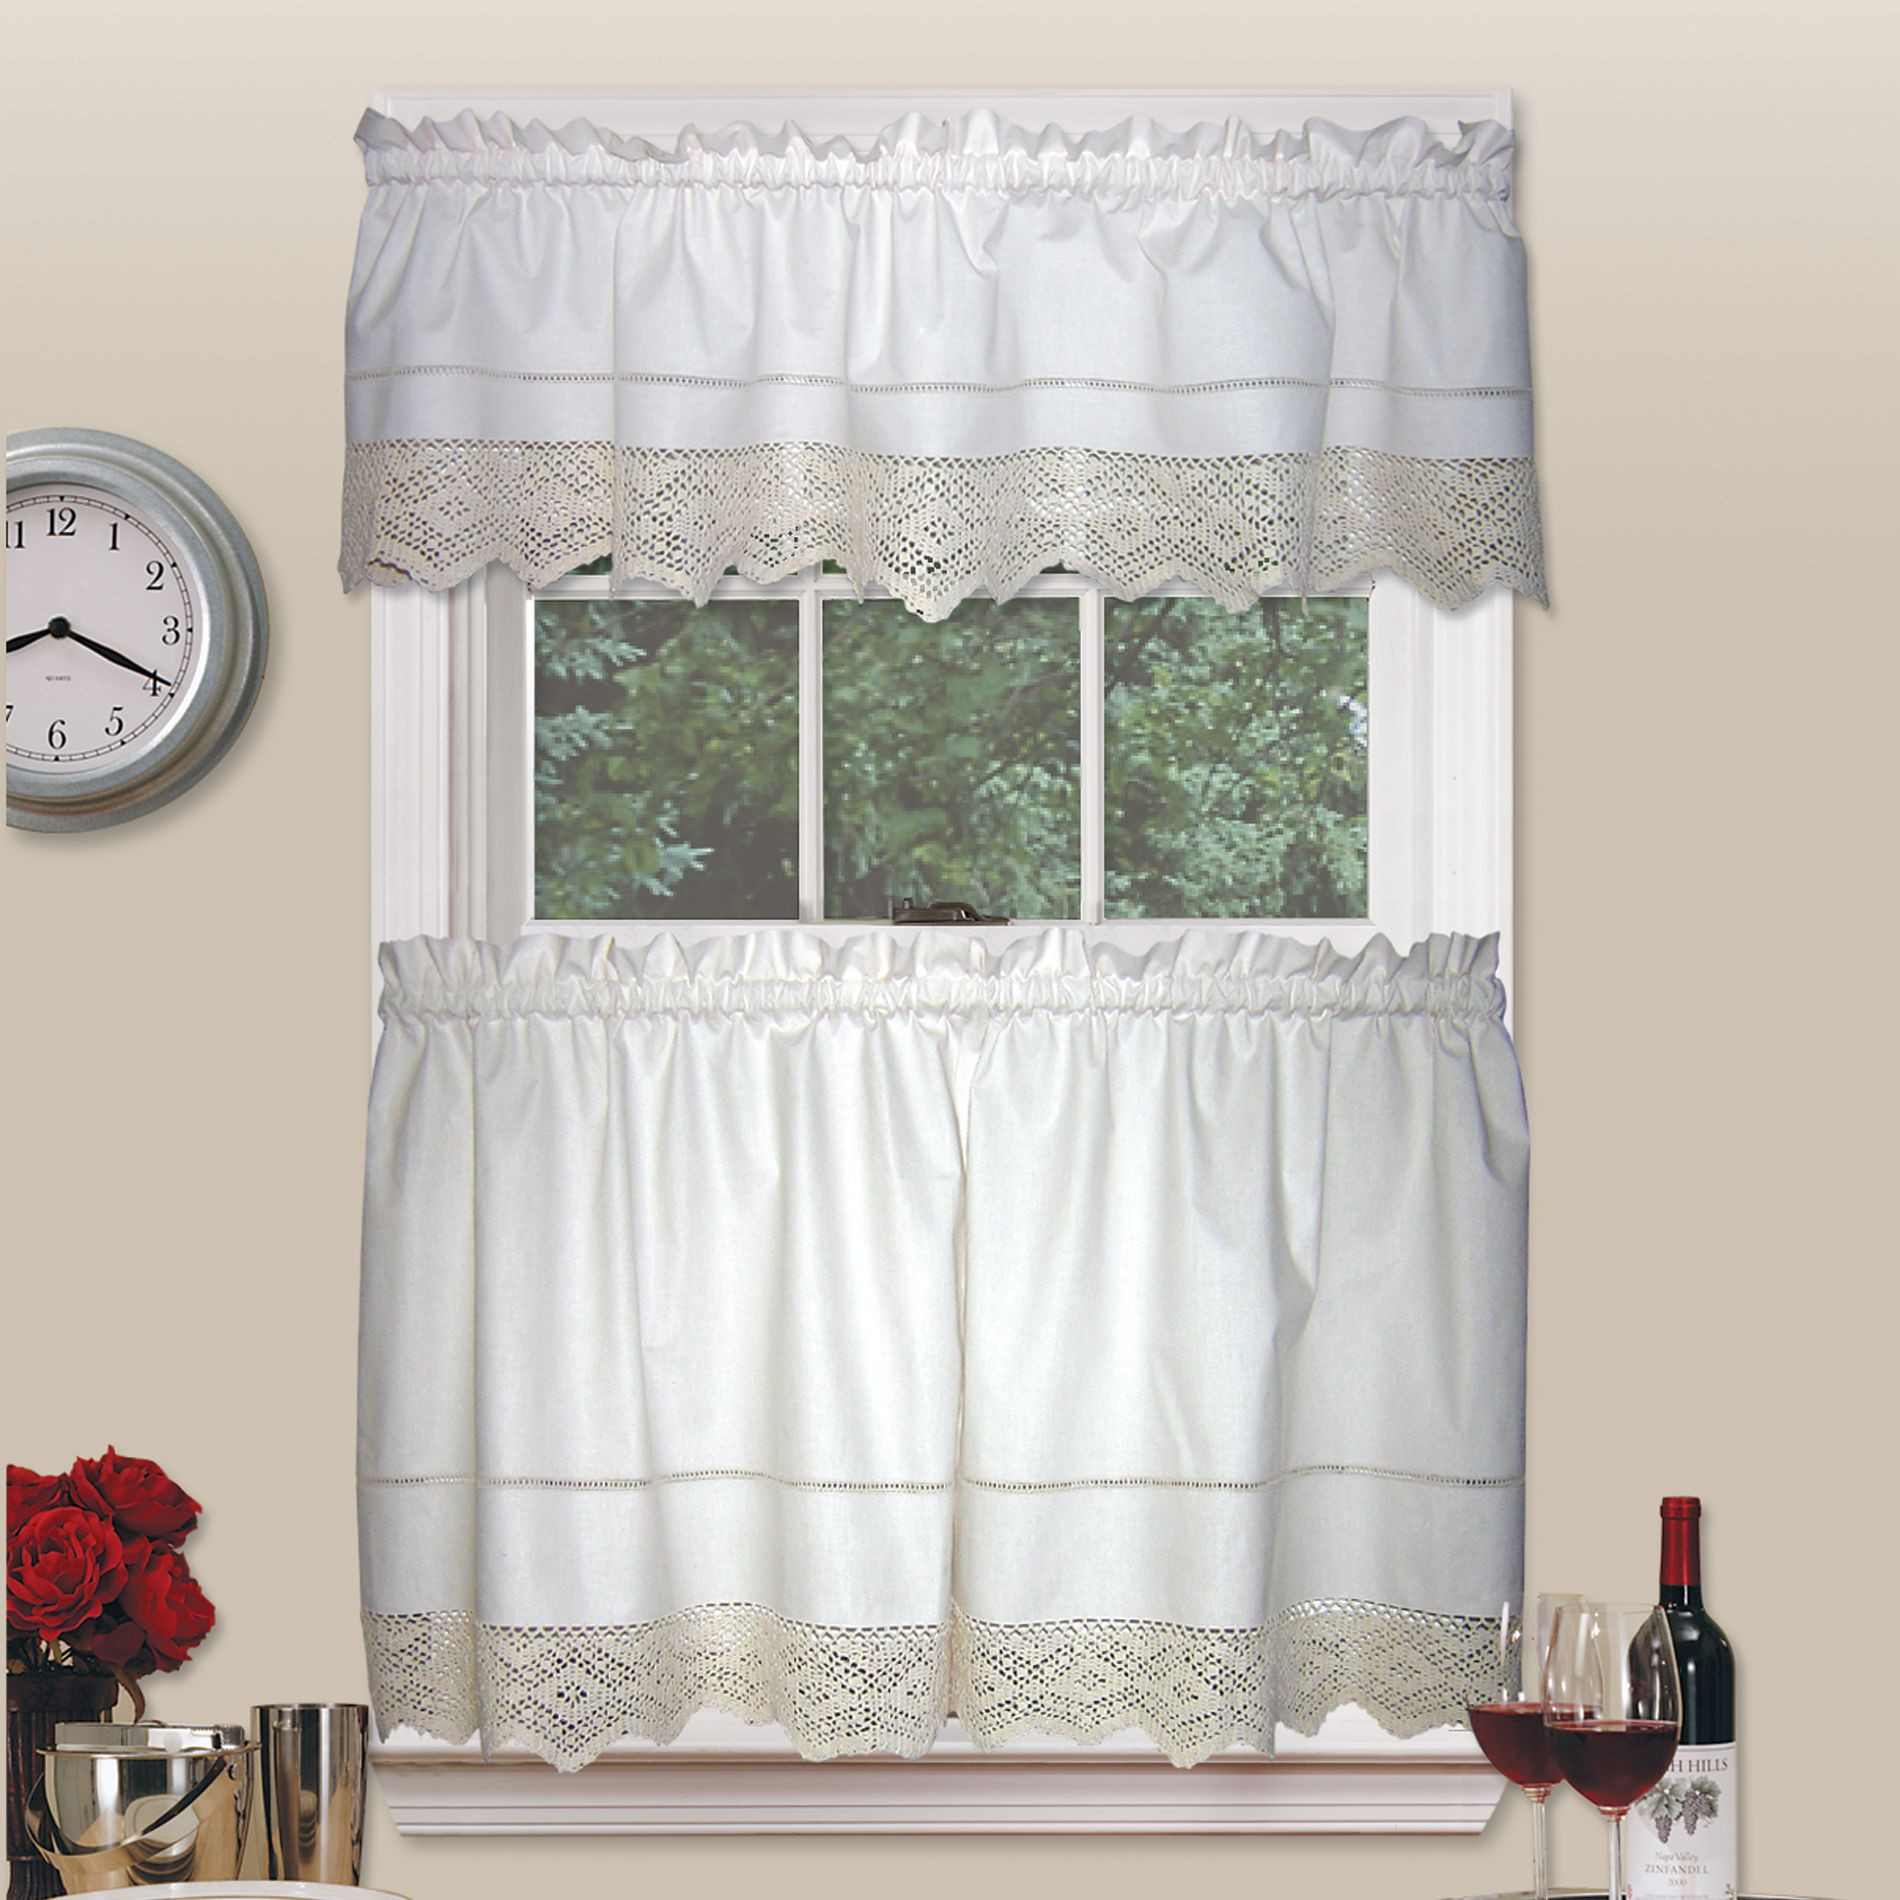 Best Of Country Living Heirloom Crochet Tier Pair Crochet Curtains Of Marvelous 47 Pictures Crochet Curtains